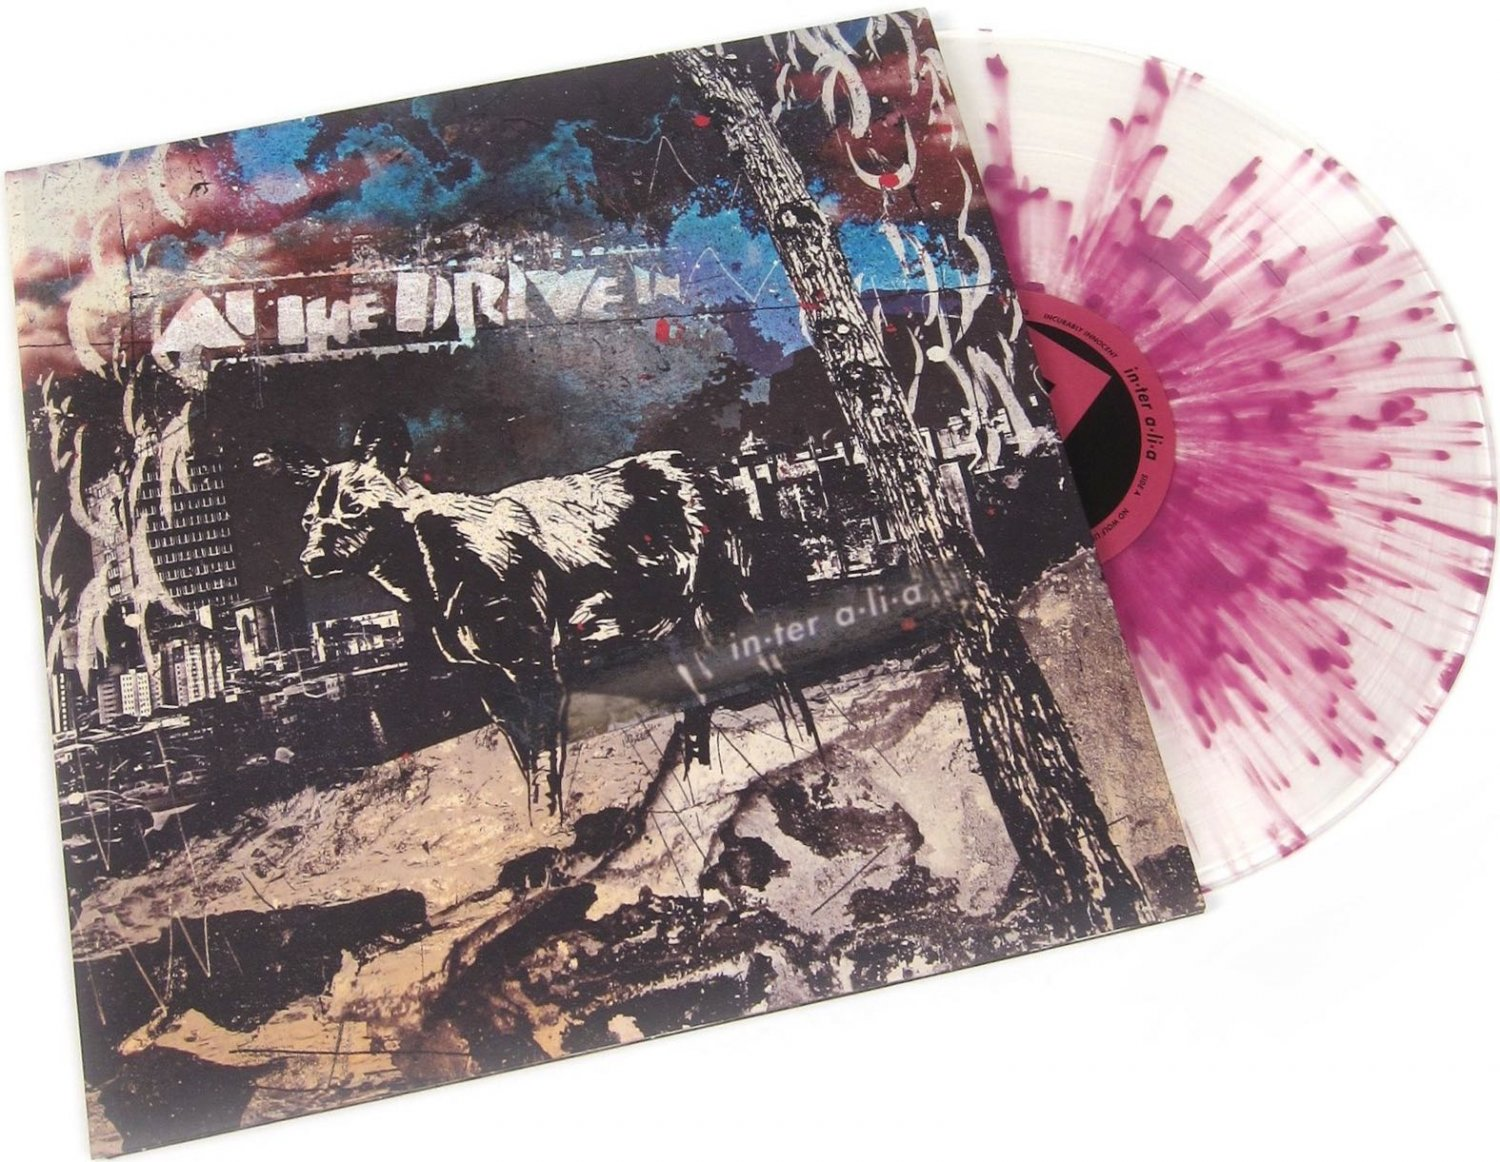 CLEAR PURPLE GRIMACE SPLATTER At The Drive In Inter Alia Vinyl LP in-ter a-li-a